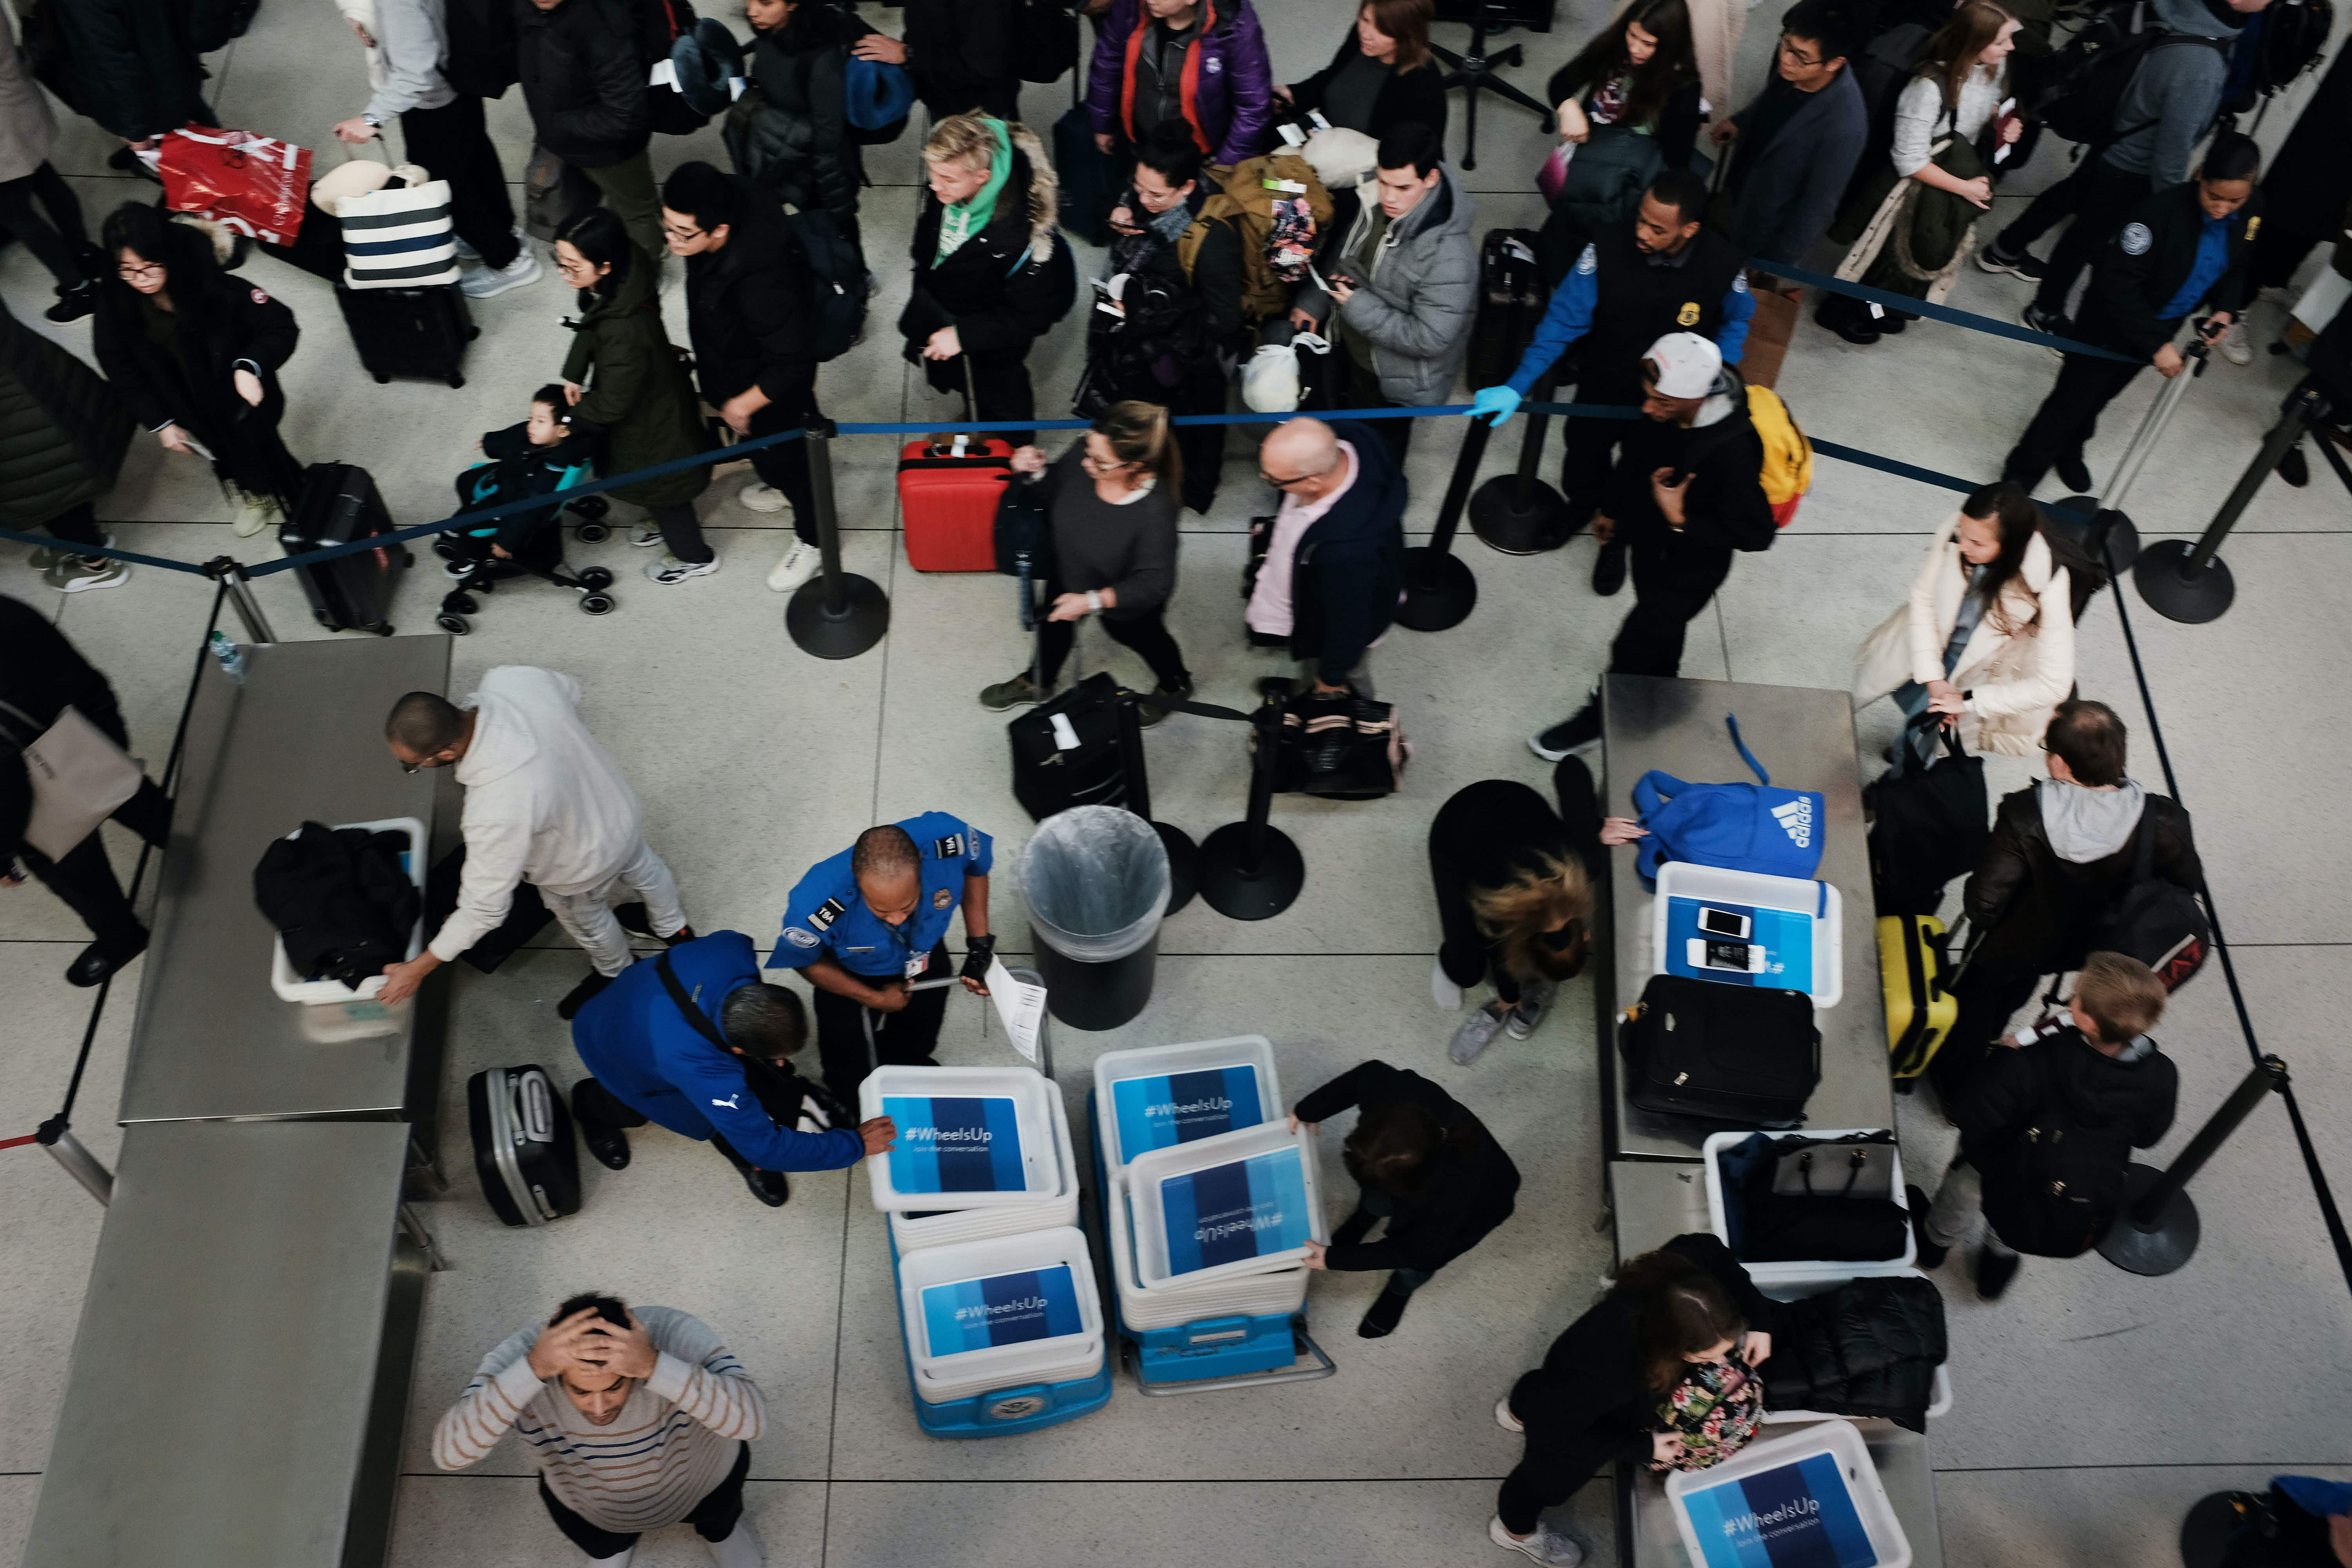 A new data-mining platform provides real-time updates at security checkpoints around the world. Image: Spencer Platt/Getty Images